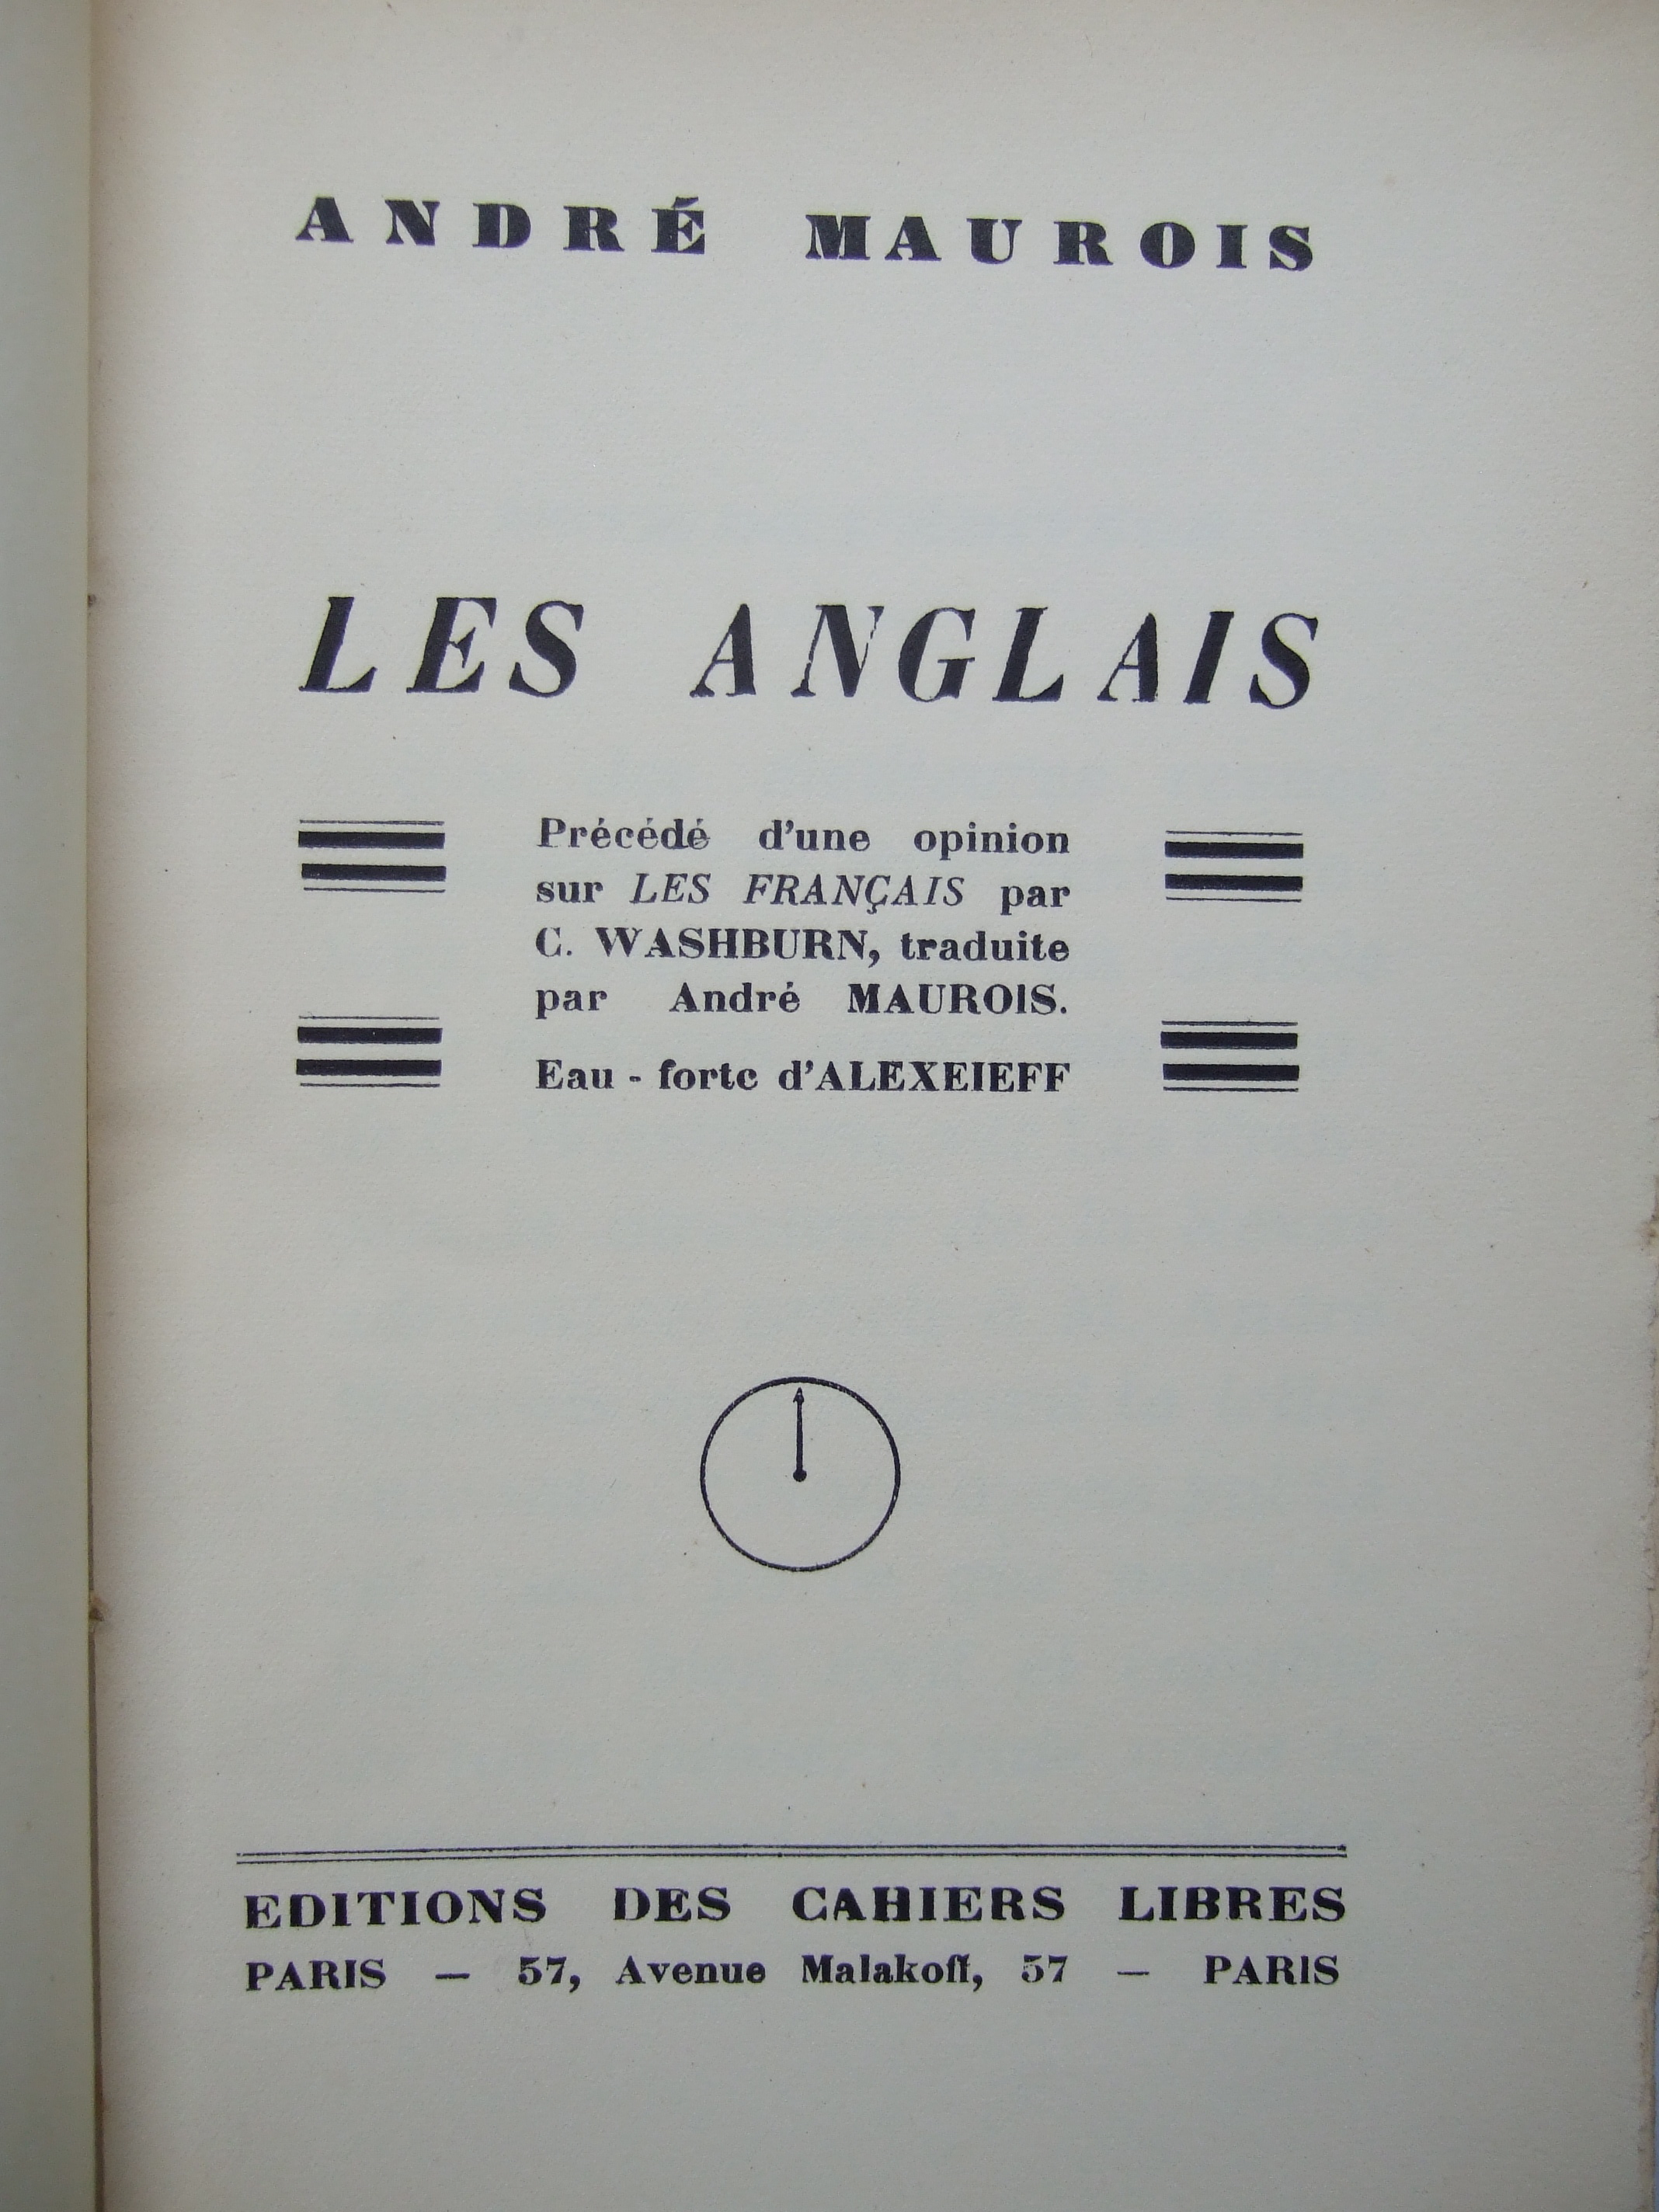 Les Anglais Title-g2_view=core.DownloadItem&g2_itemId=1937&g2_serialNumber=1.JPG